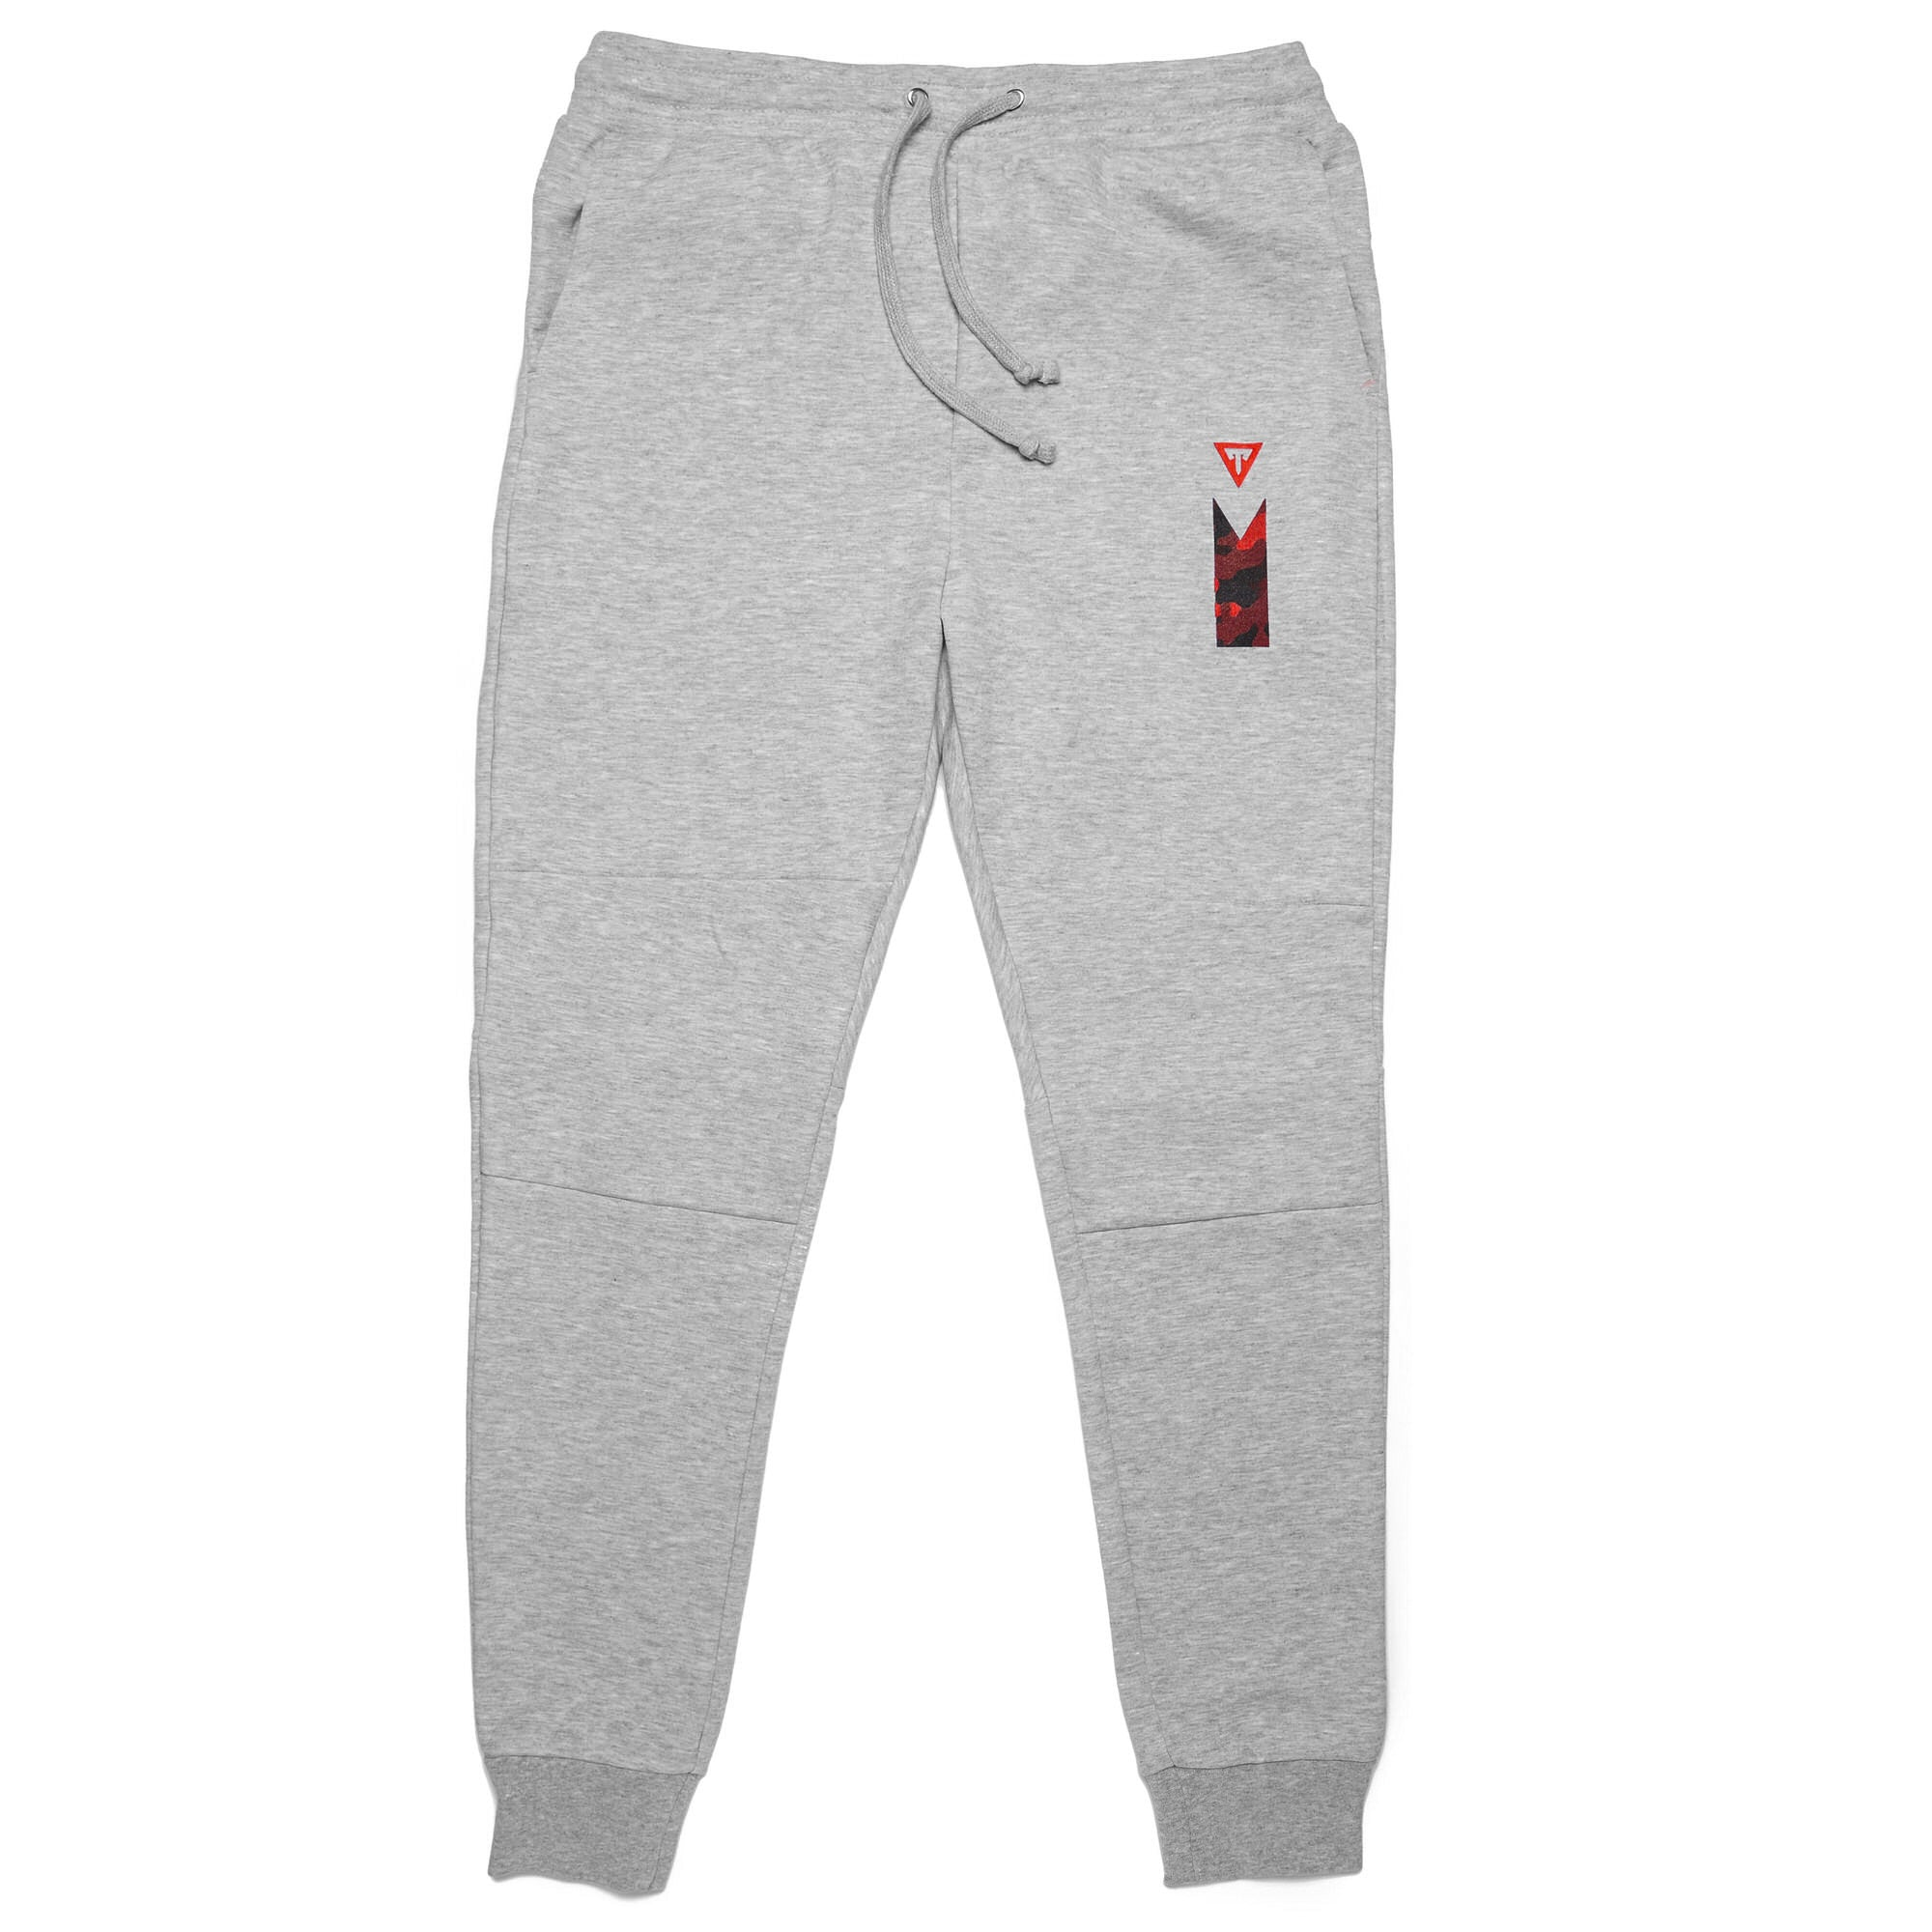 Typical Redemption Joggers